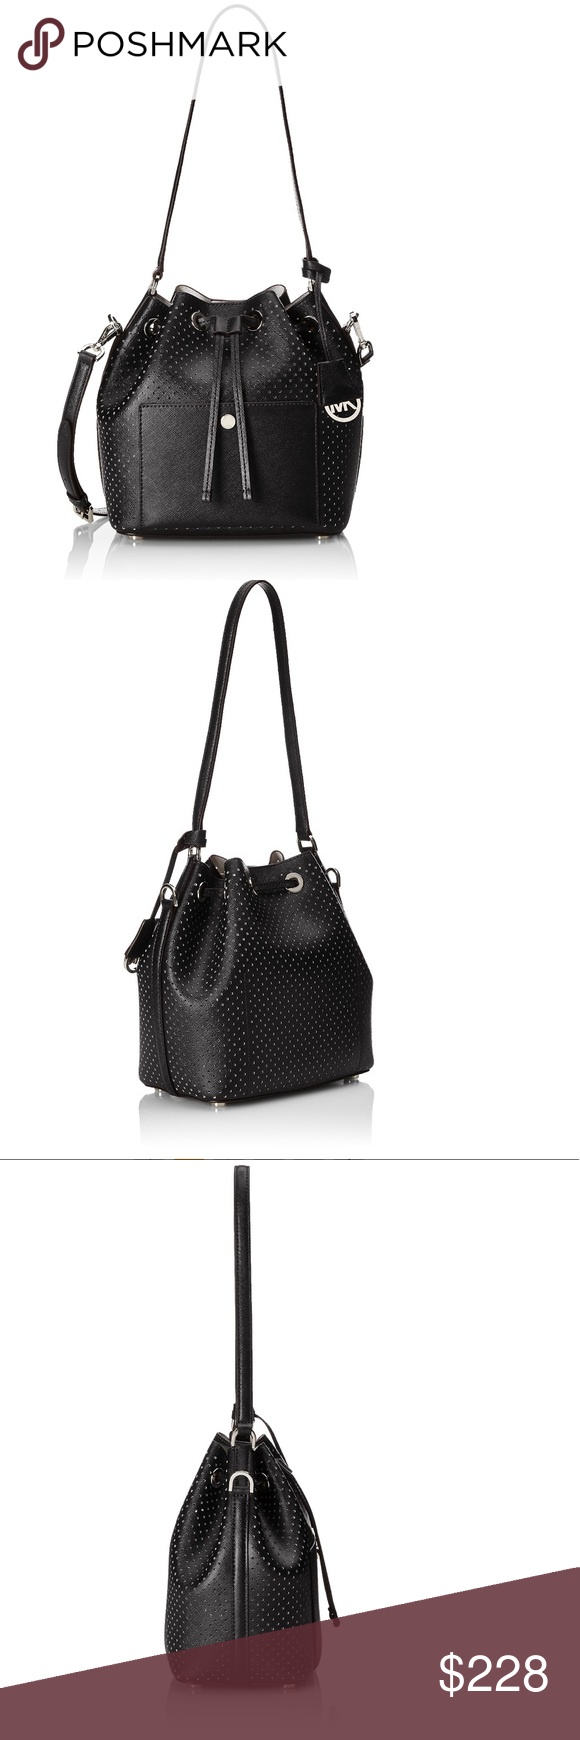 46f8953ca32e6 Michael Kors Greenwich Medium Bucket Bag Black Crafted in this season's  must-have bicolor perforated